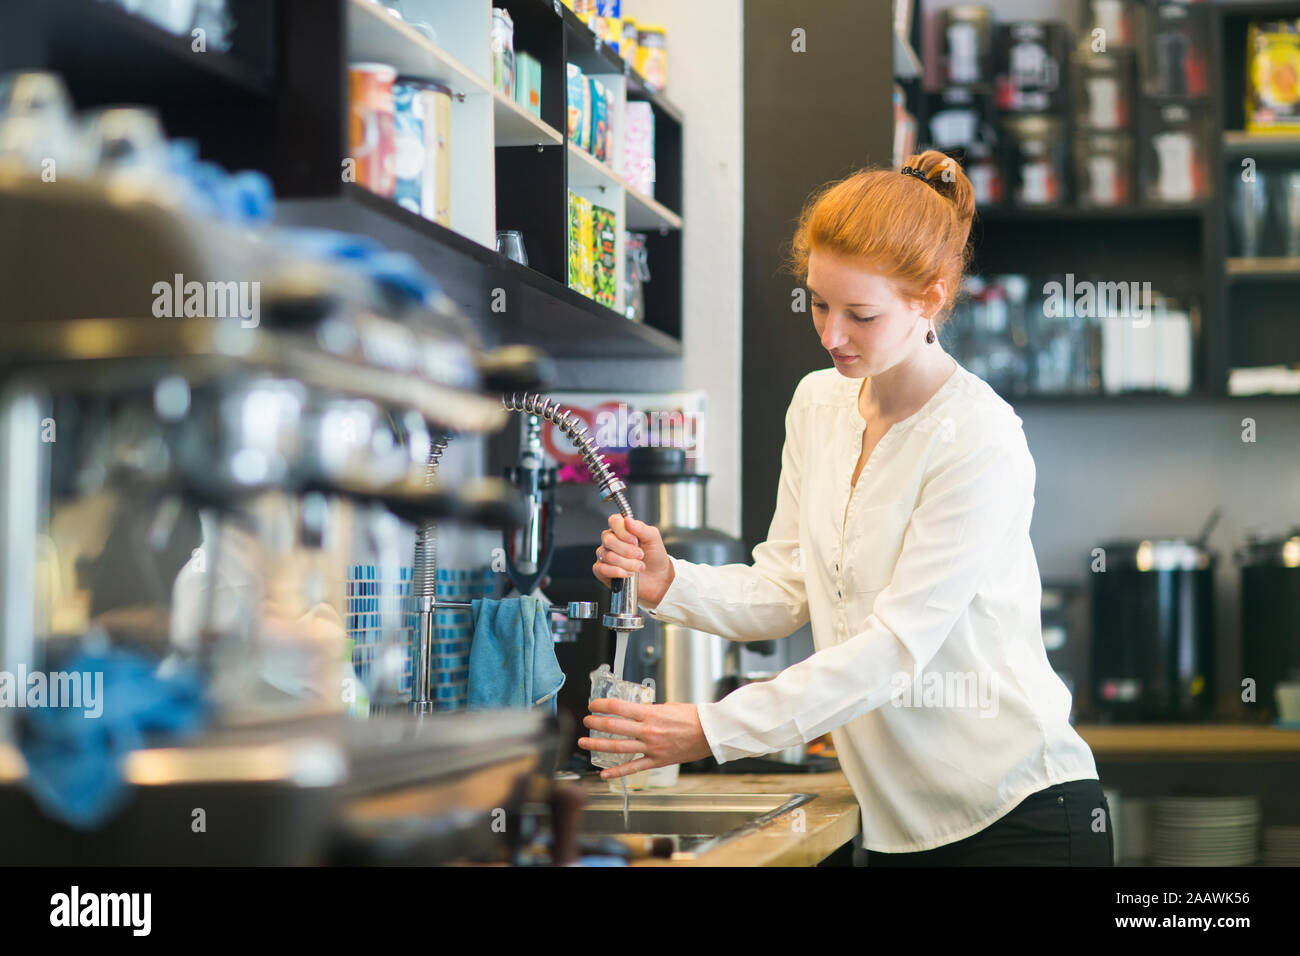 Young woman working in coffee shop, washing dishes Stock Photo